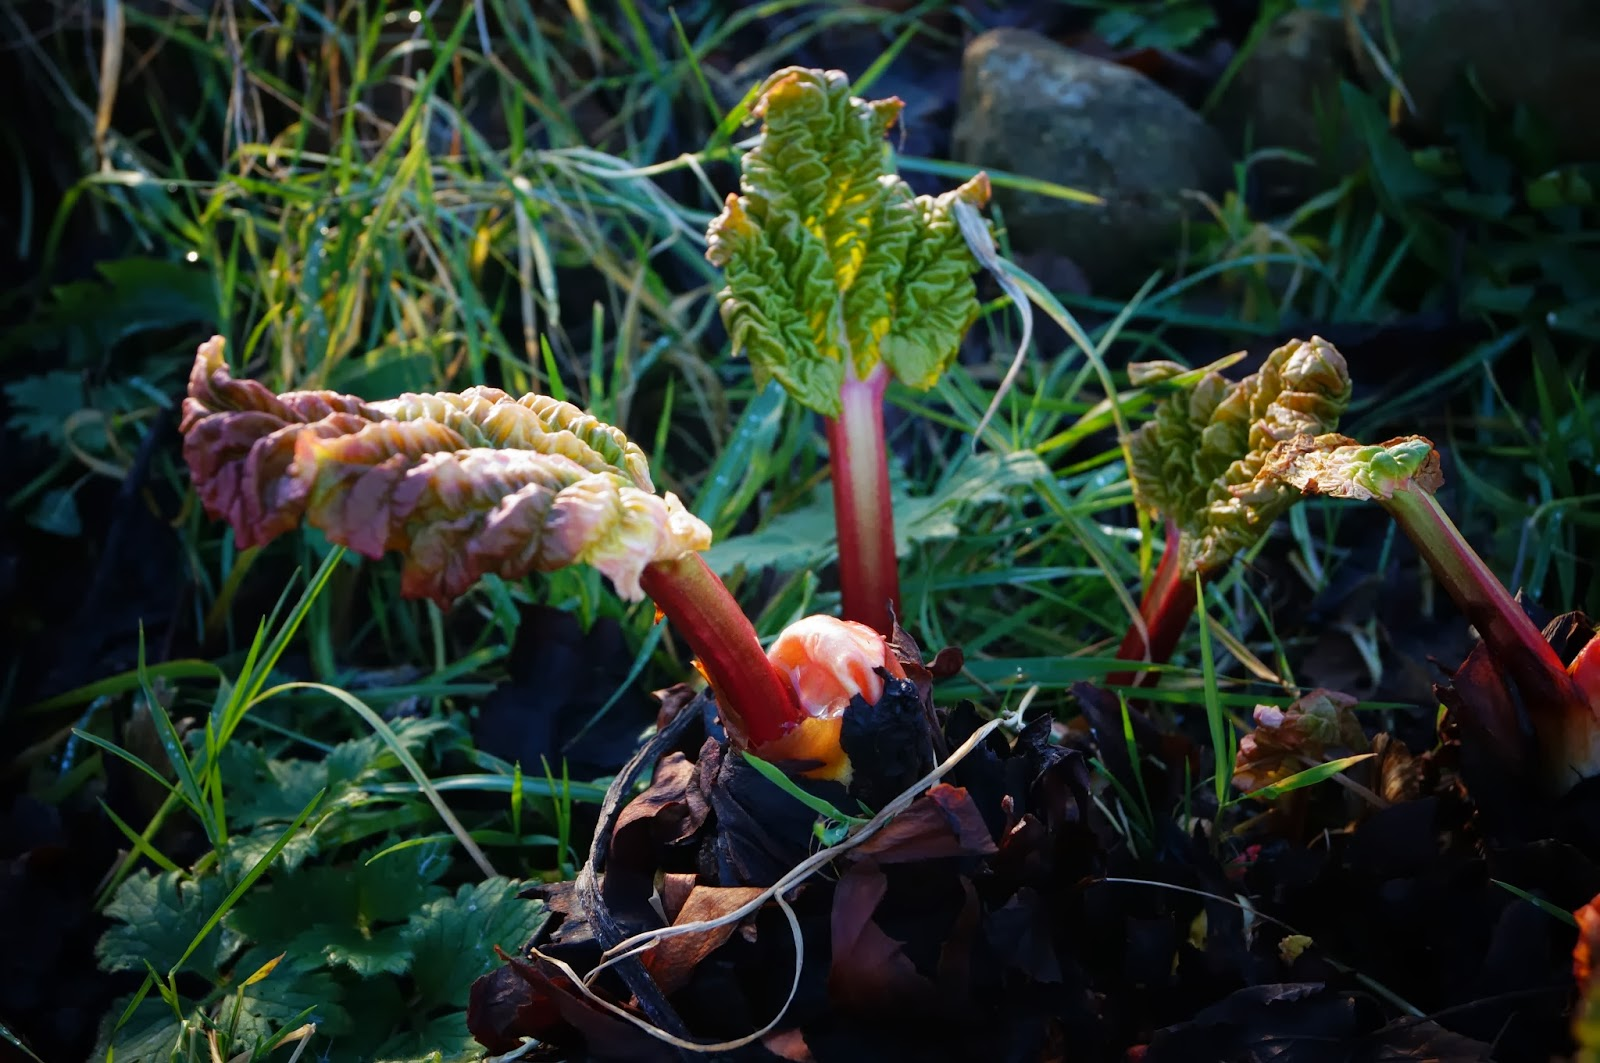 Rhubarb poking through - 'Grow Our Own' Allotment Blog